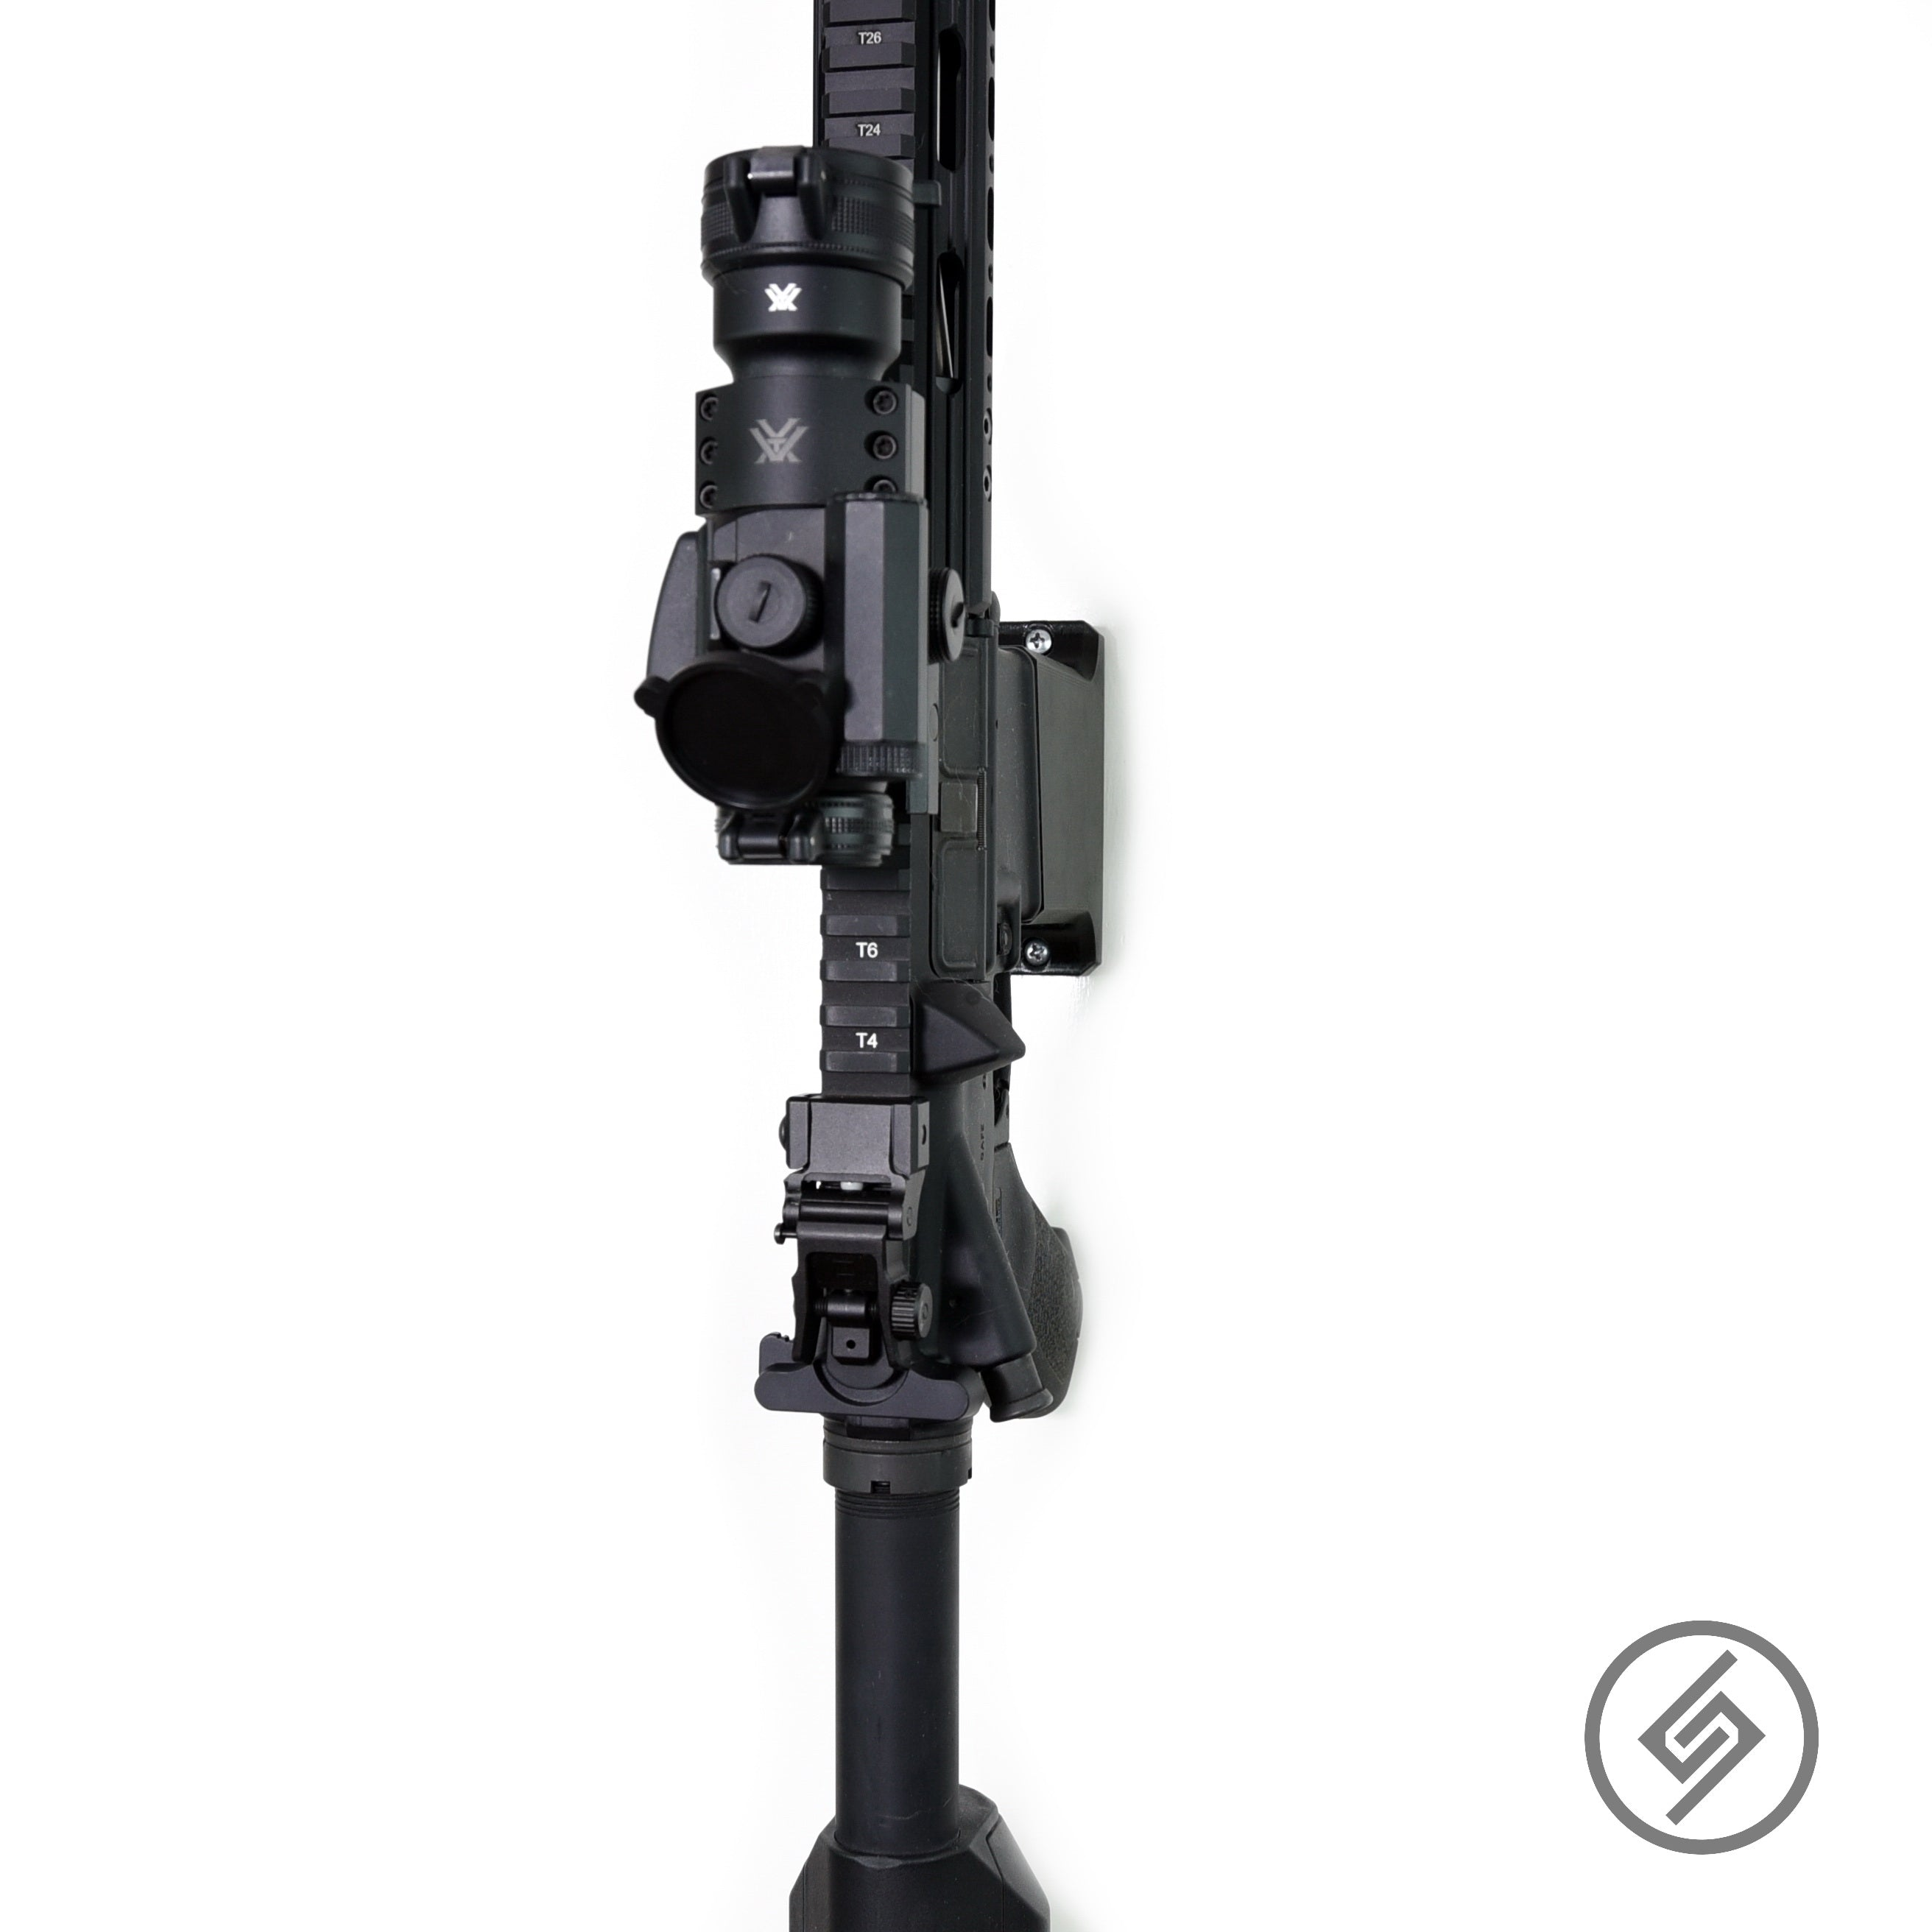 AR-15 Straight wall mount display hook adapter holder Spartan Mount